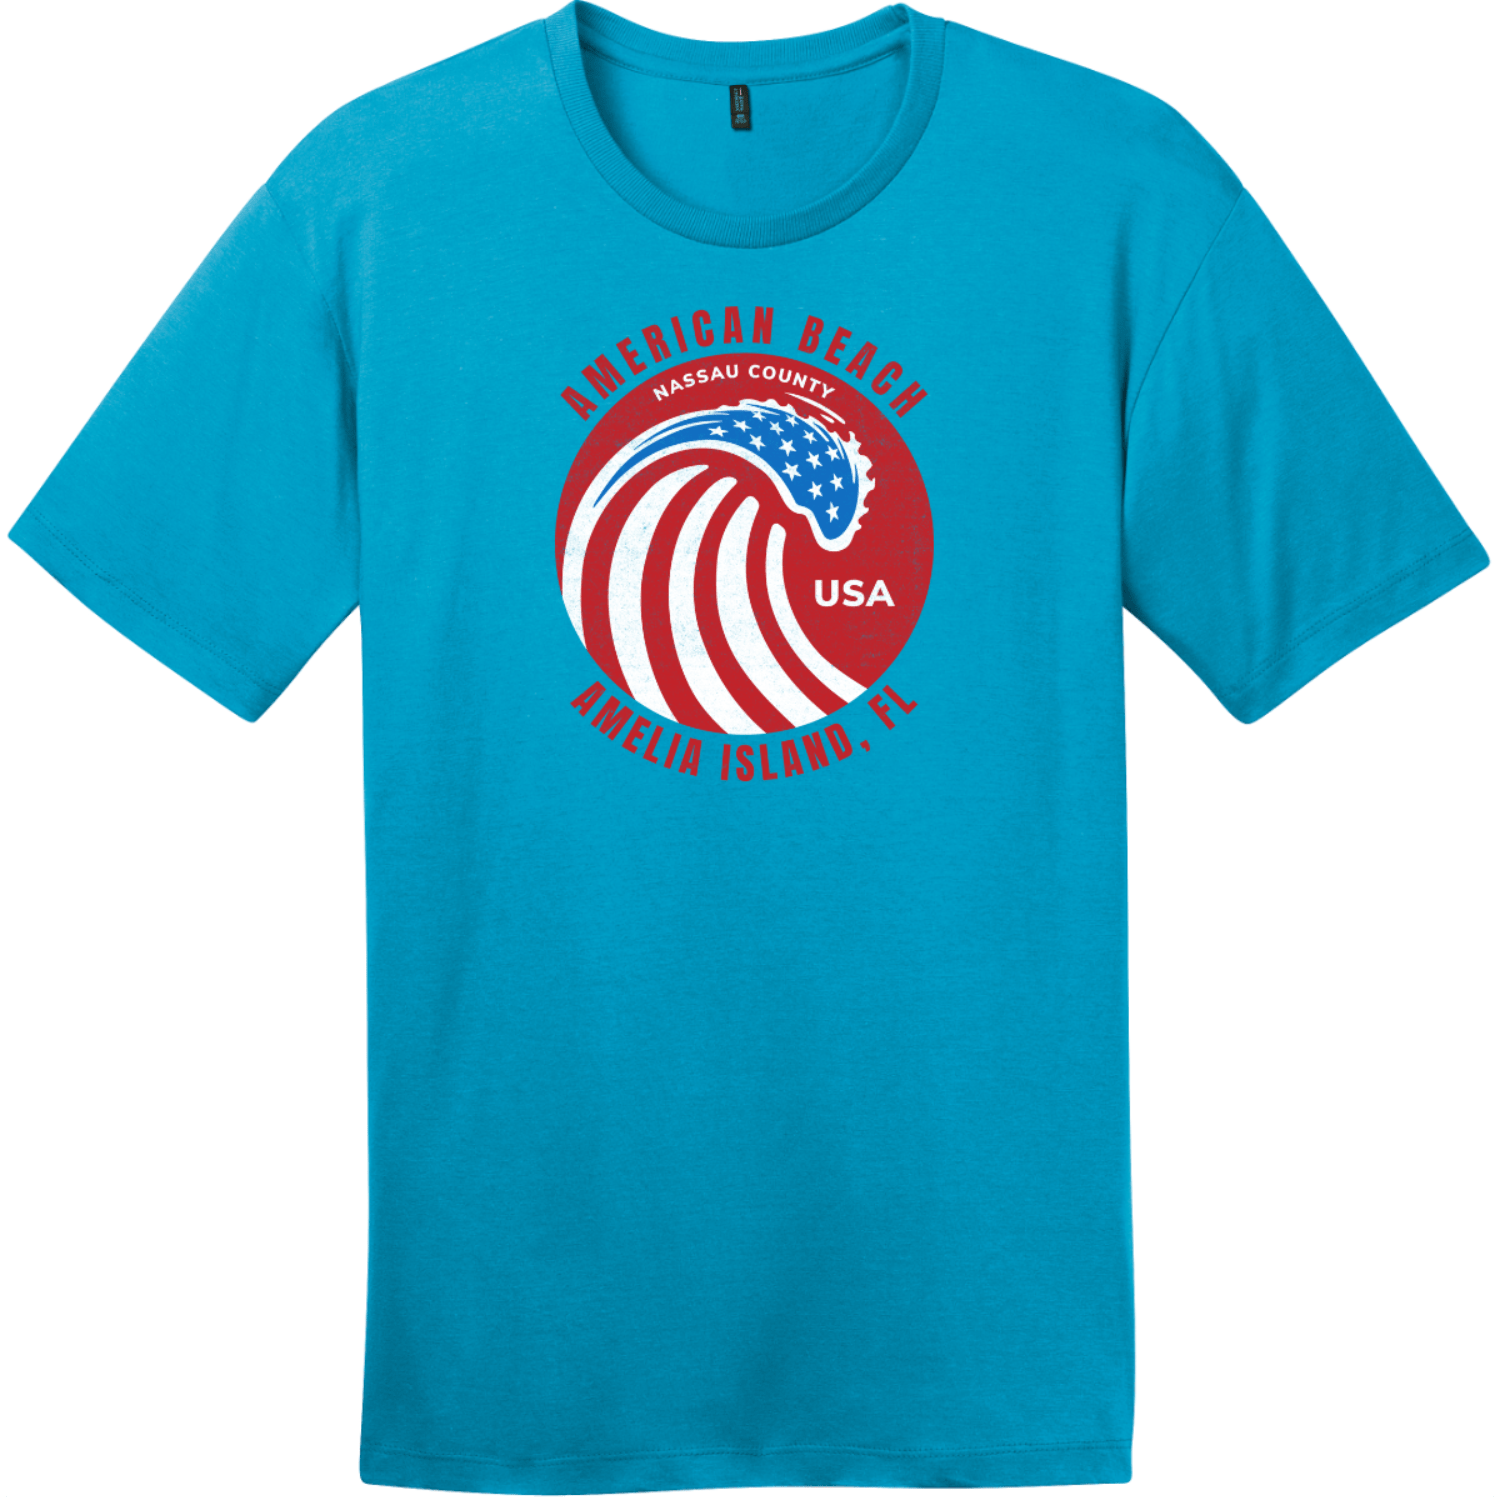 American Beach Amelia Island Vintage T-Shirt Bright Turquoise District Perfect Weight Tee DT104